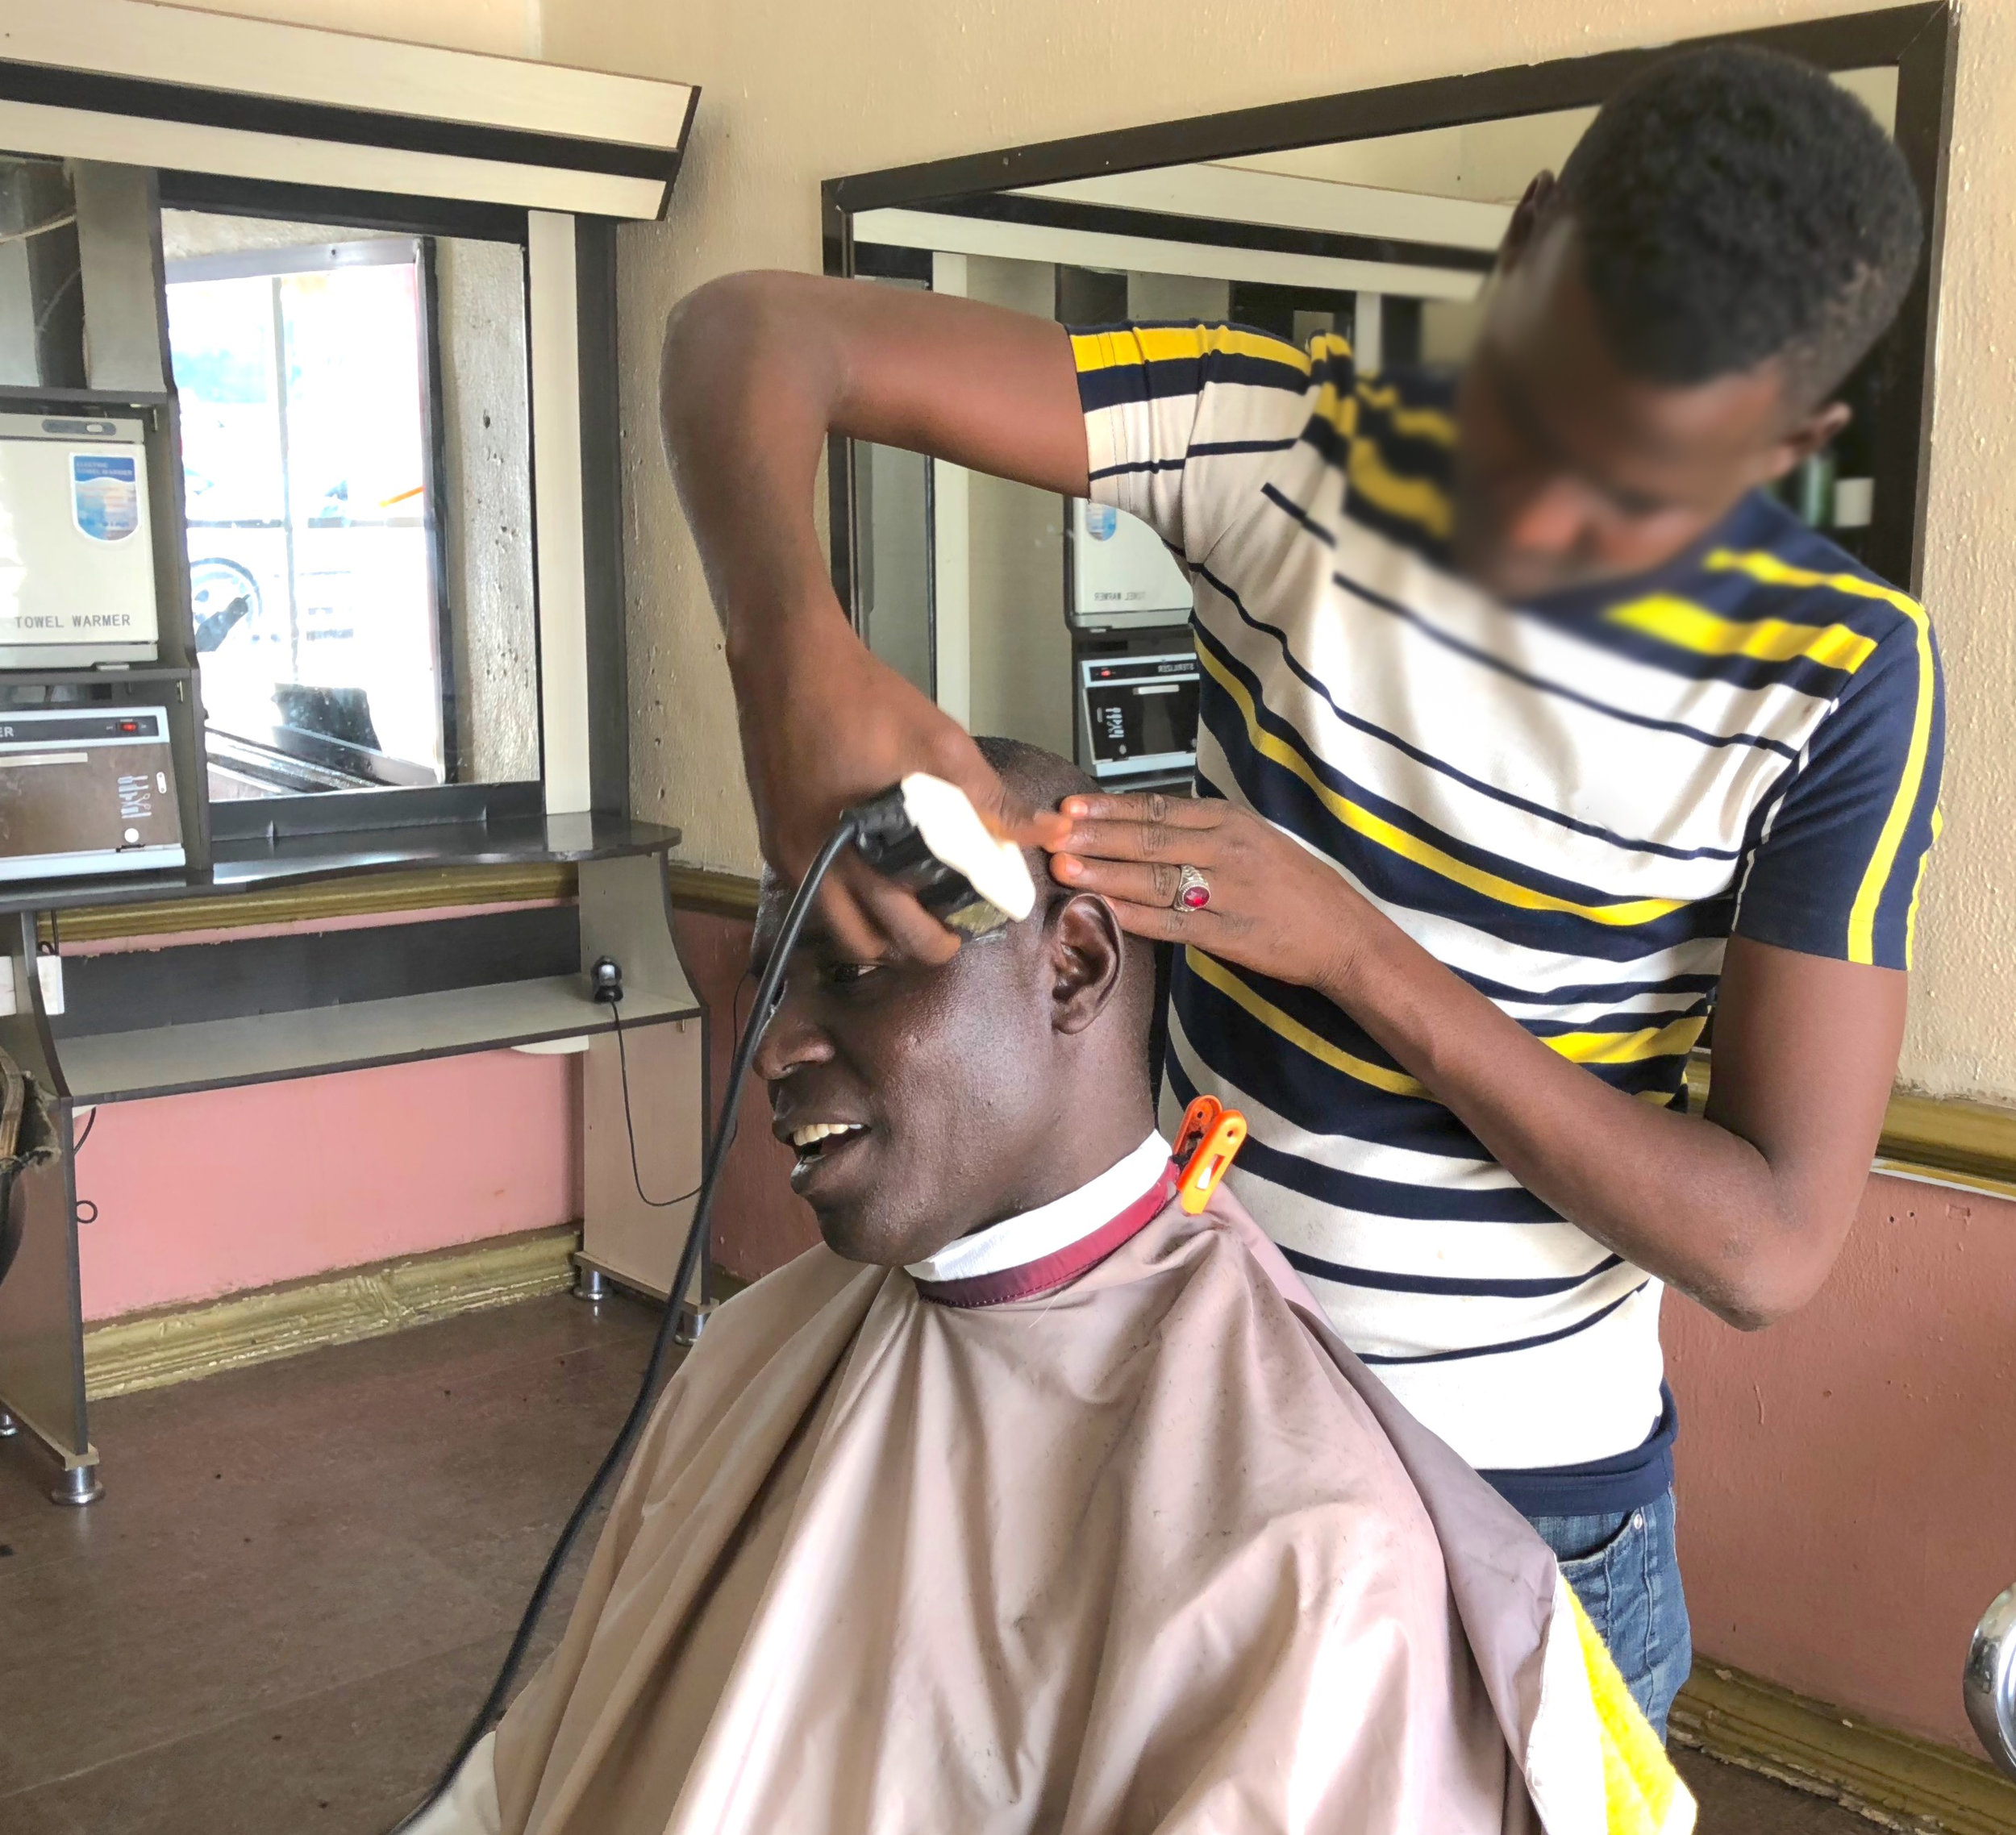 FROM BOKO HARAM TO BARBER SHOP